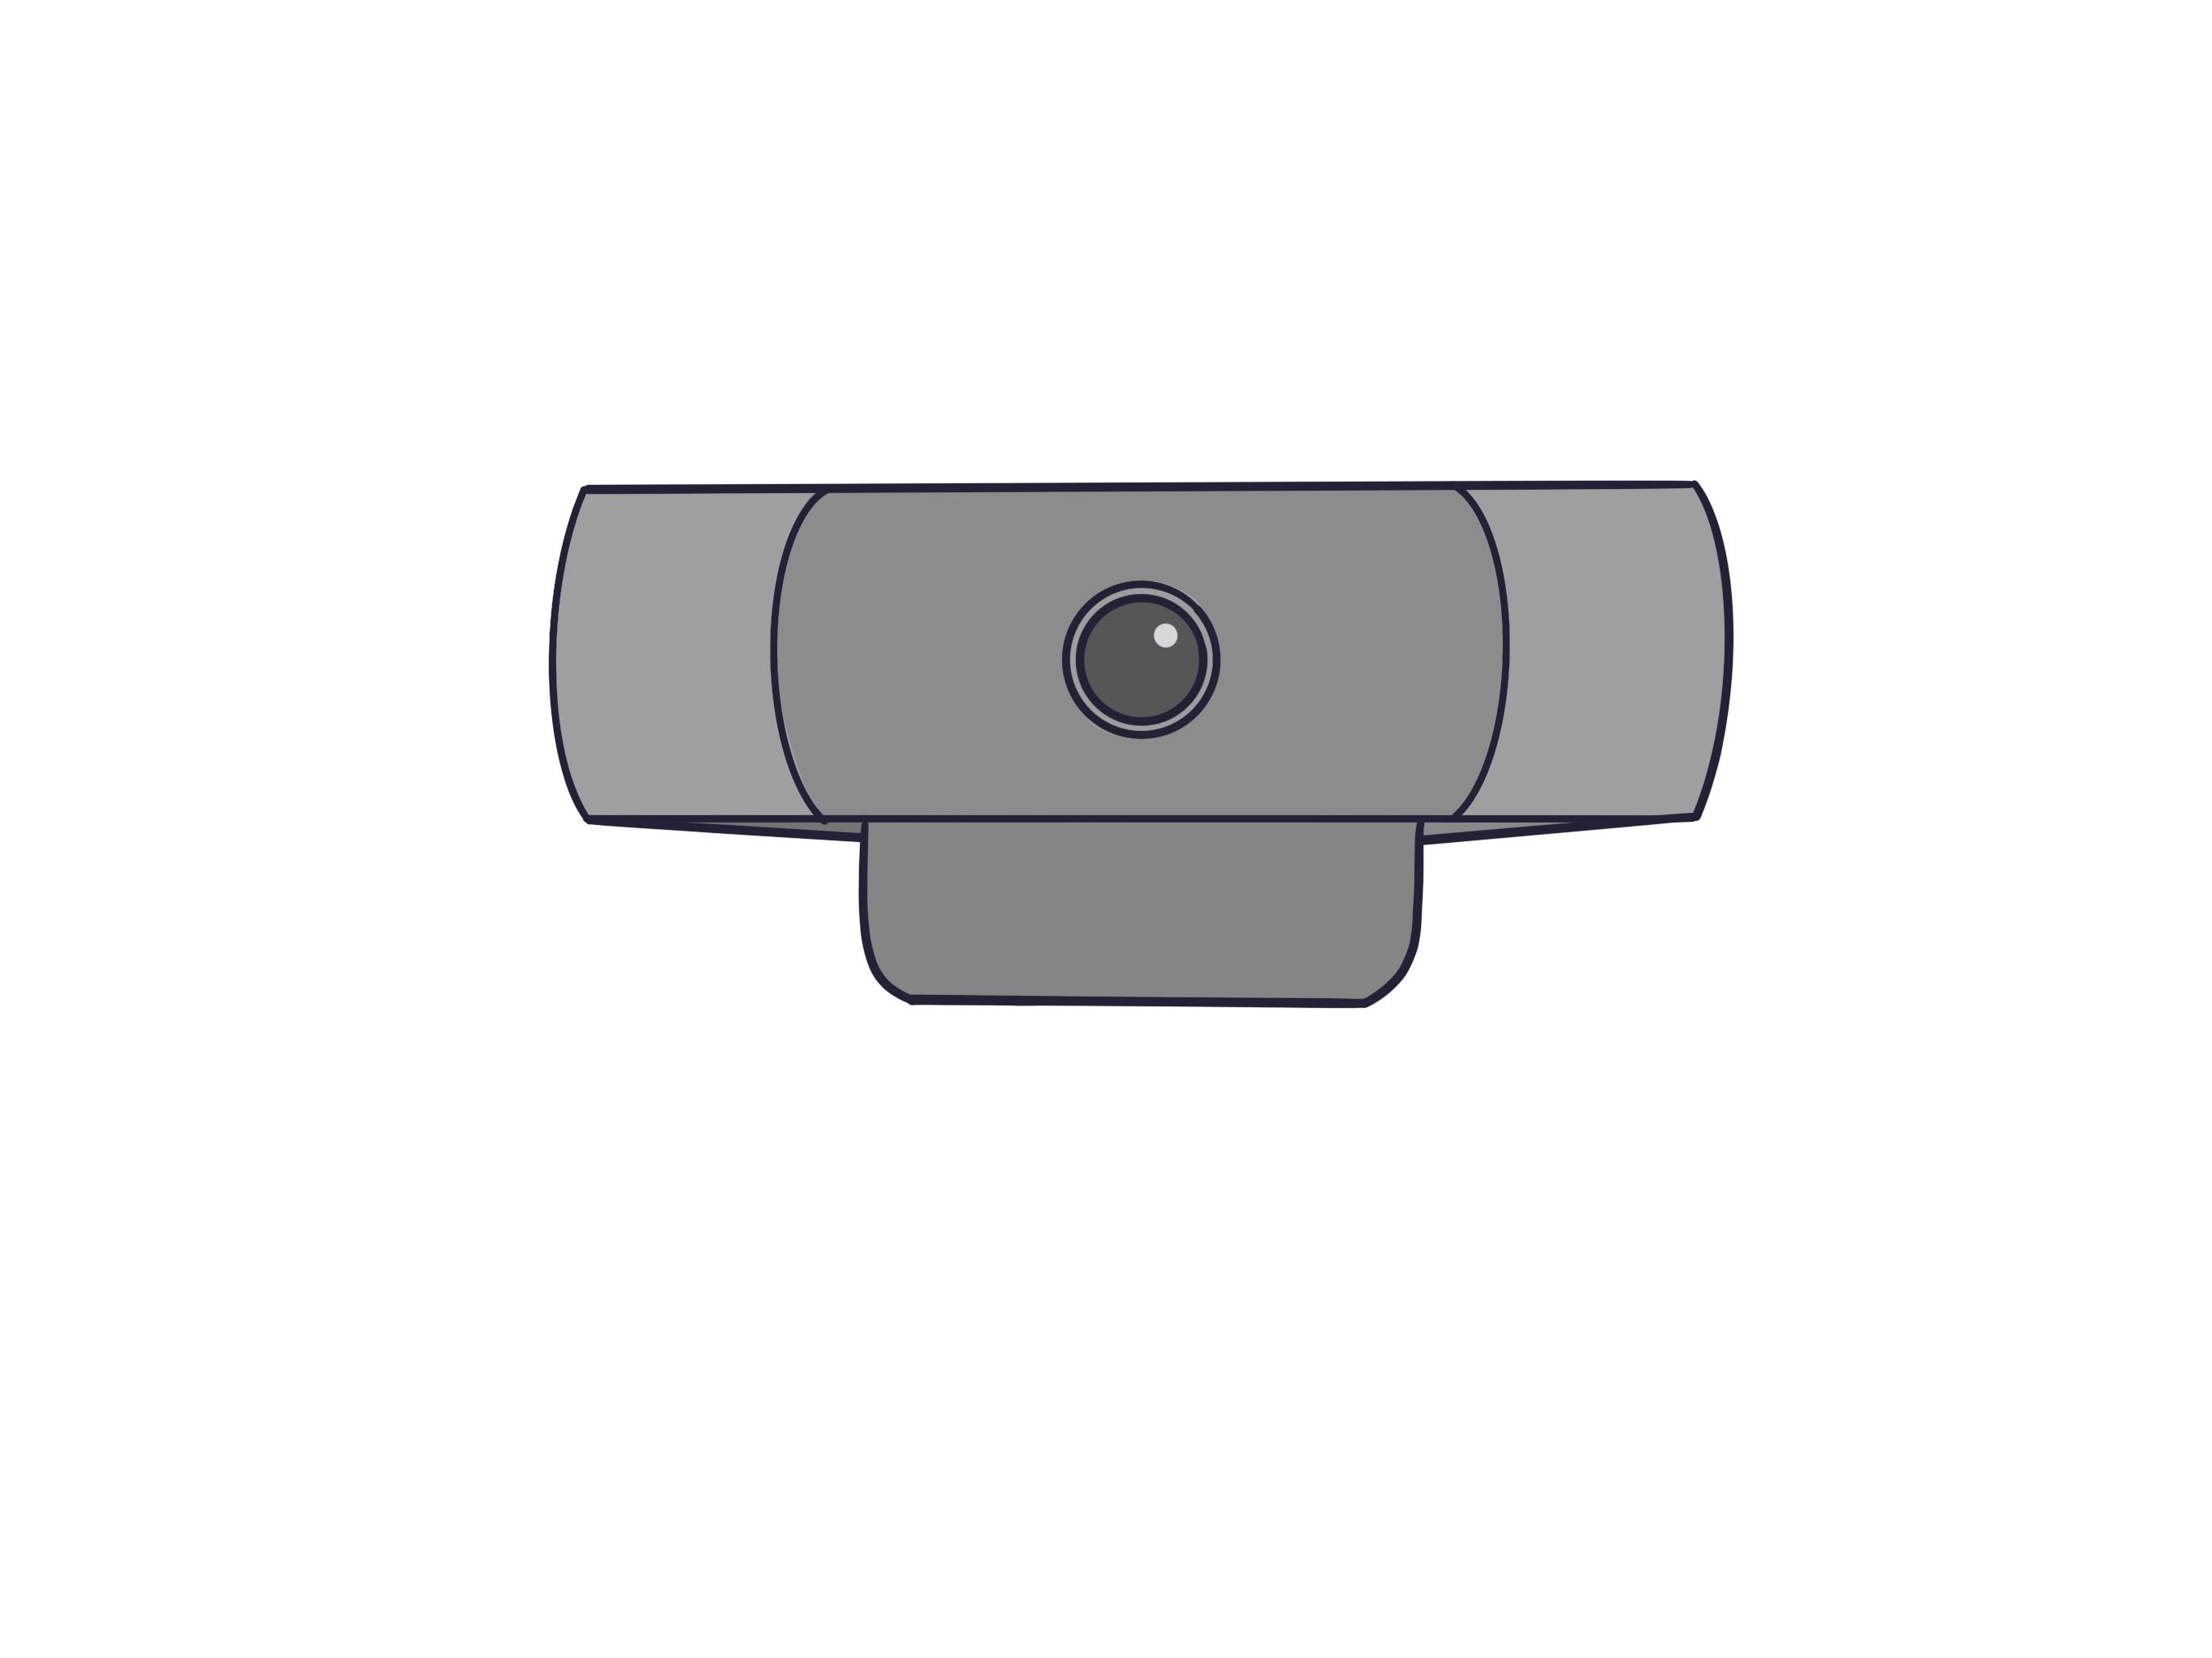 Image of the external camera. a small, rectangular device with a camera in the middle and adjustable clamps.